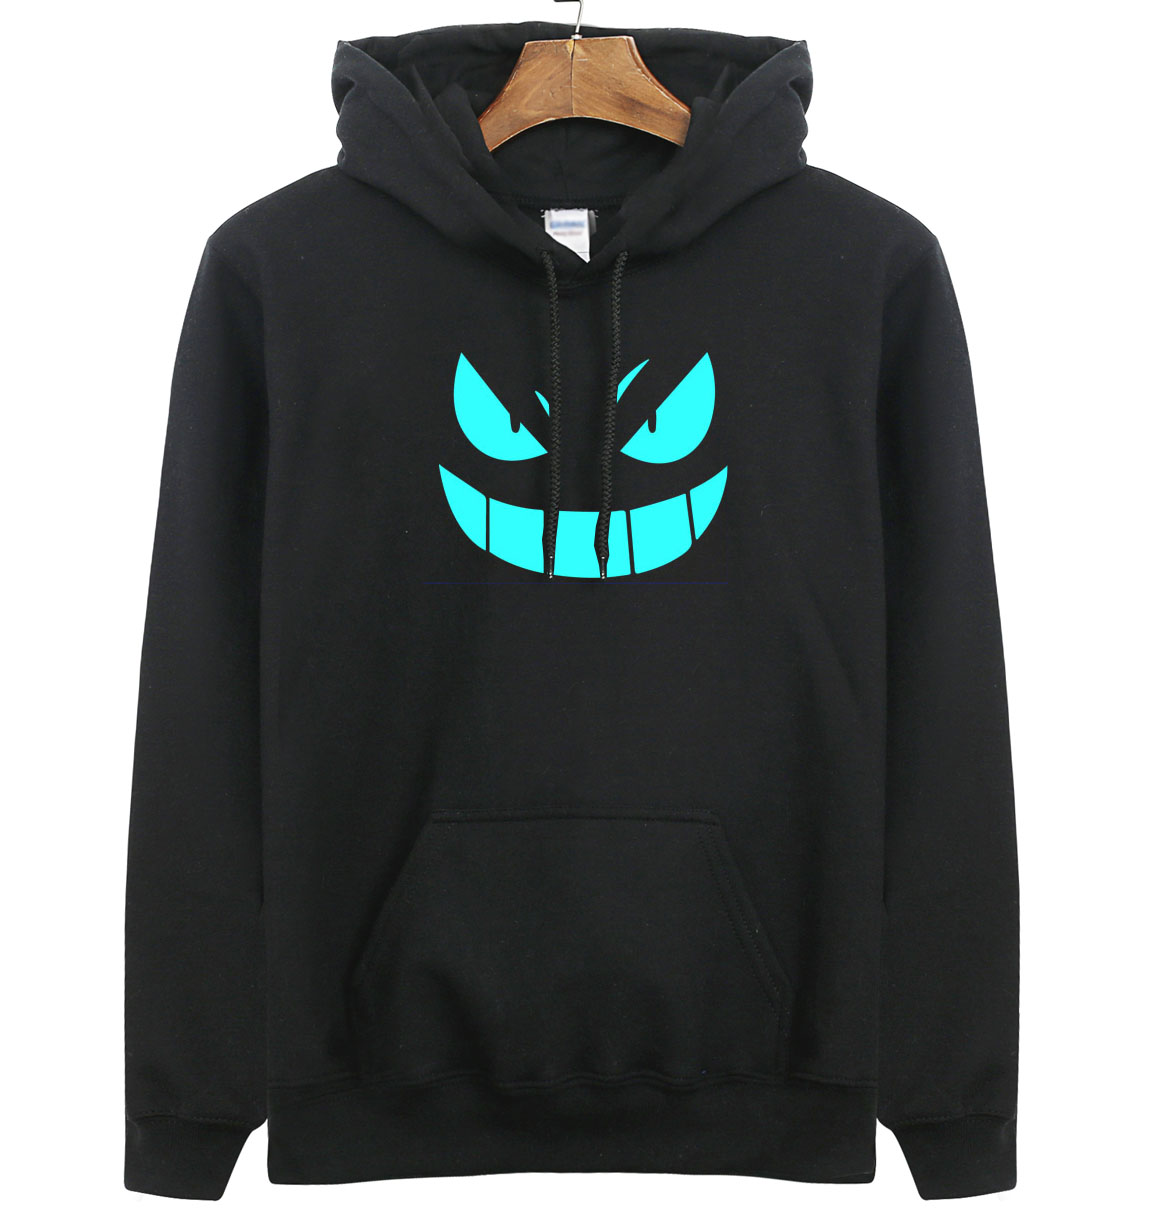 2018 Men's New Arrival Brand Hoodies Luminous Pokemon Go Pocket Monster Gengar Pullover Hoodie Sweatshirts Casual Fitness Hoody